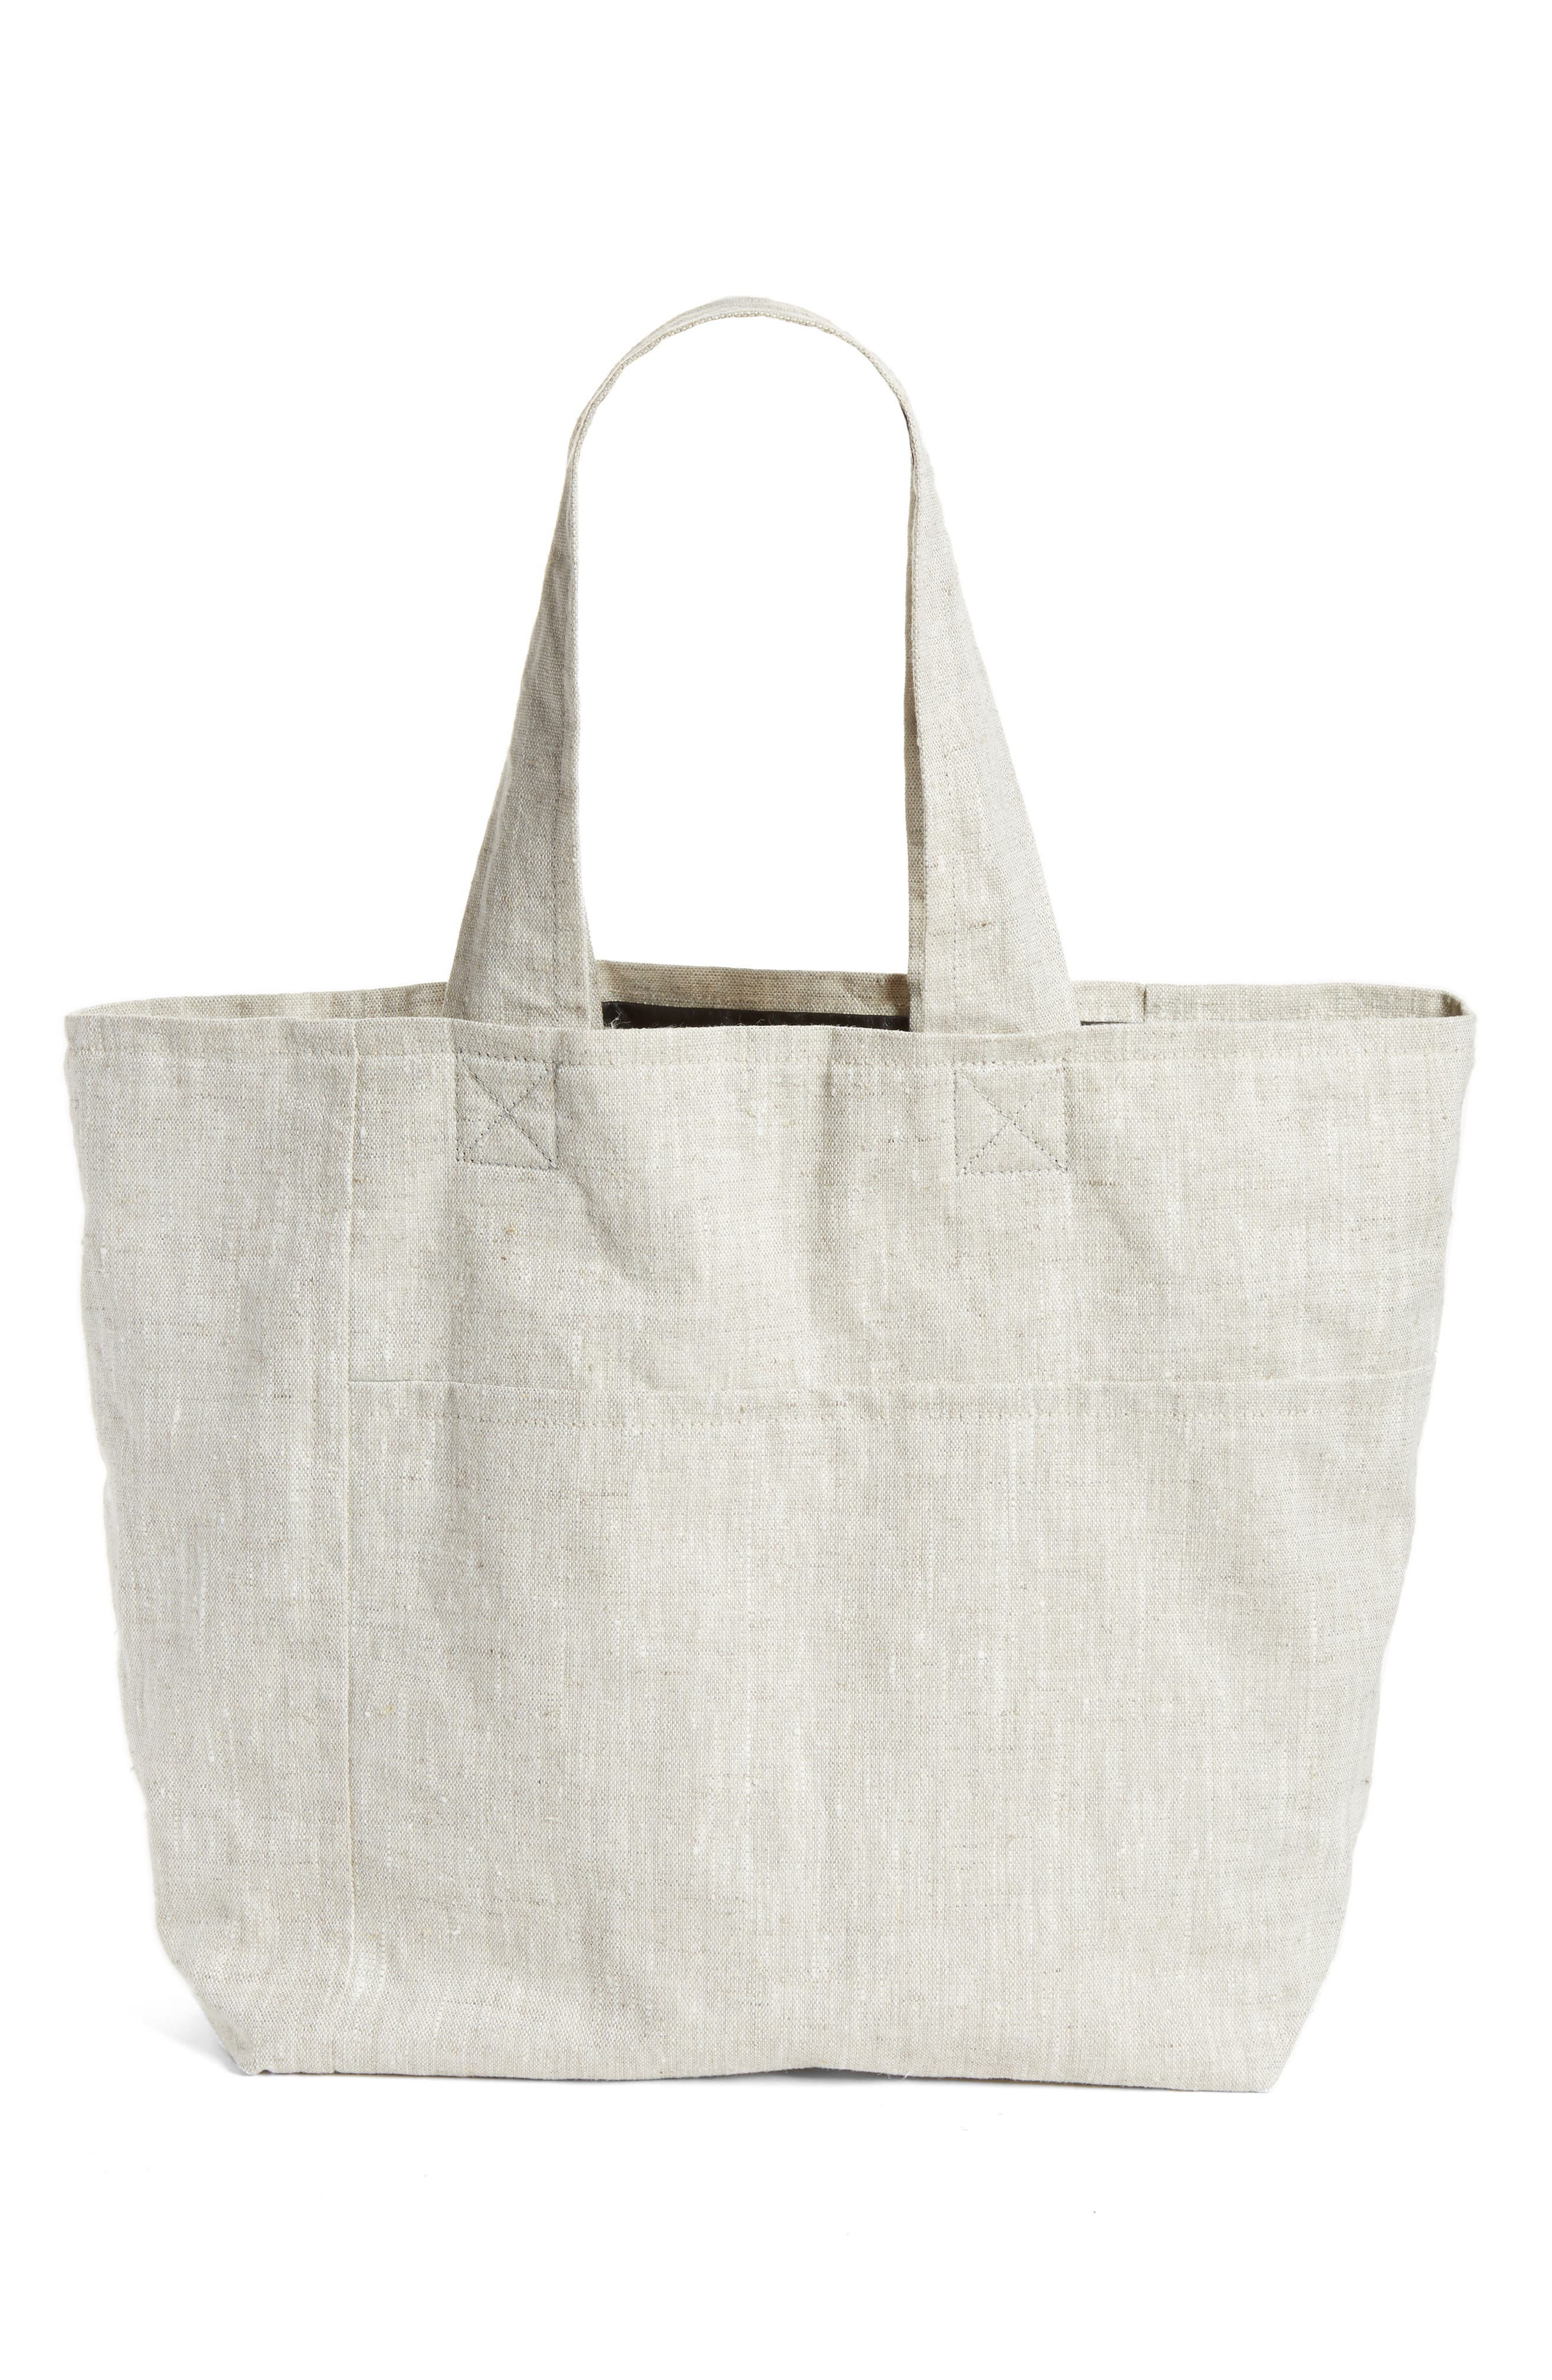 Sunday Tote,                             Alternate thumbnail 2, color,                             020